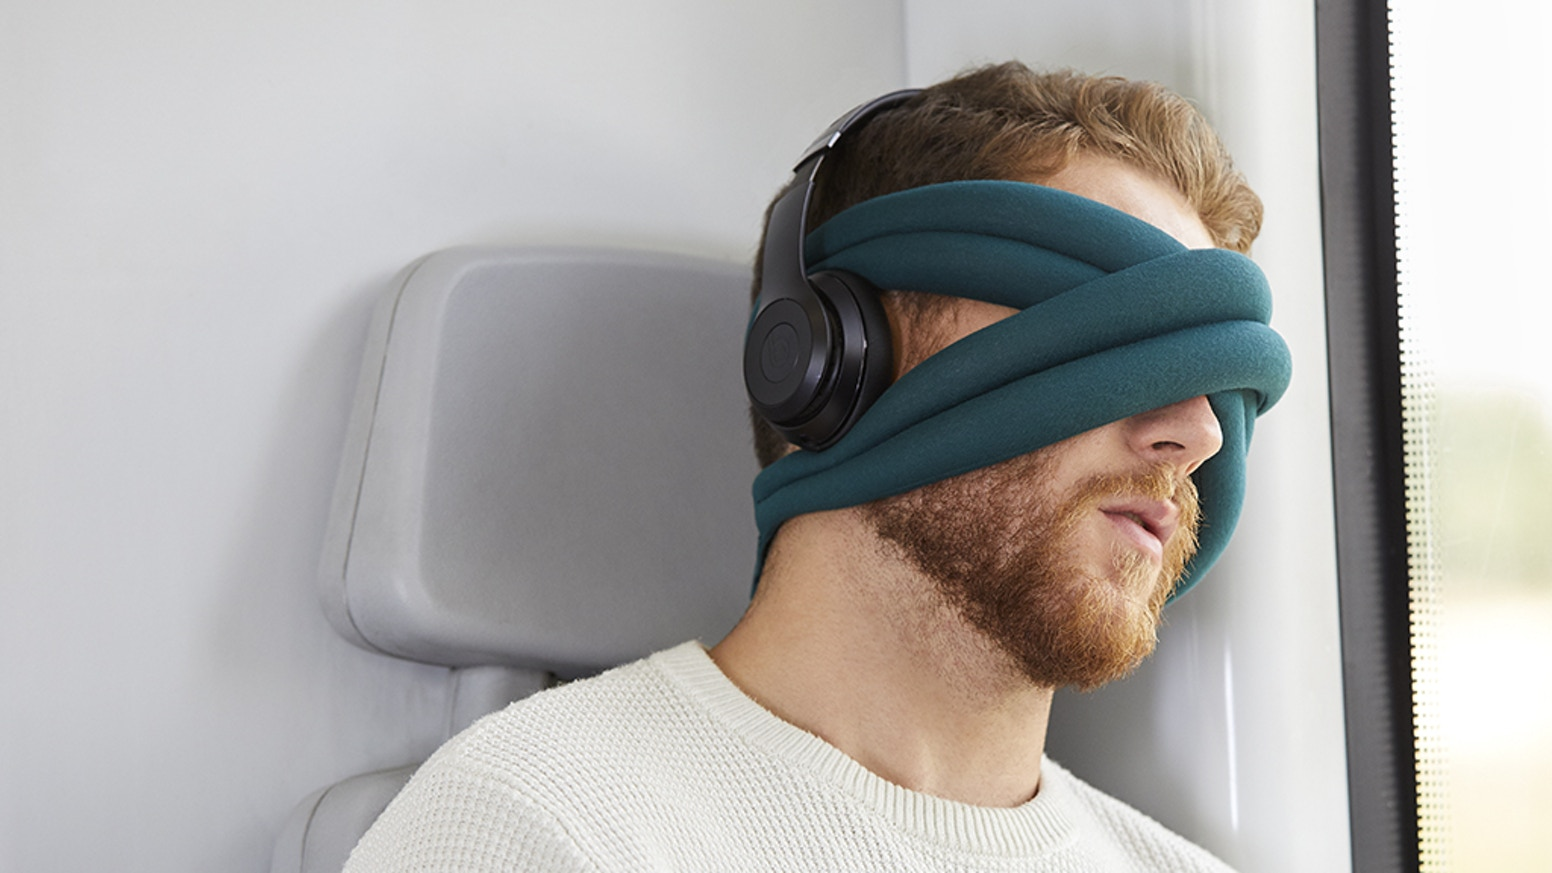 The most stylish eye pillow providing you a cocoon to disconnect and rest in the blink of an eye, wherever you want, whenever you want.